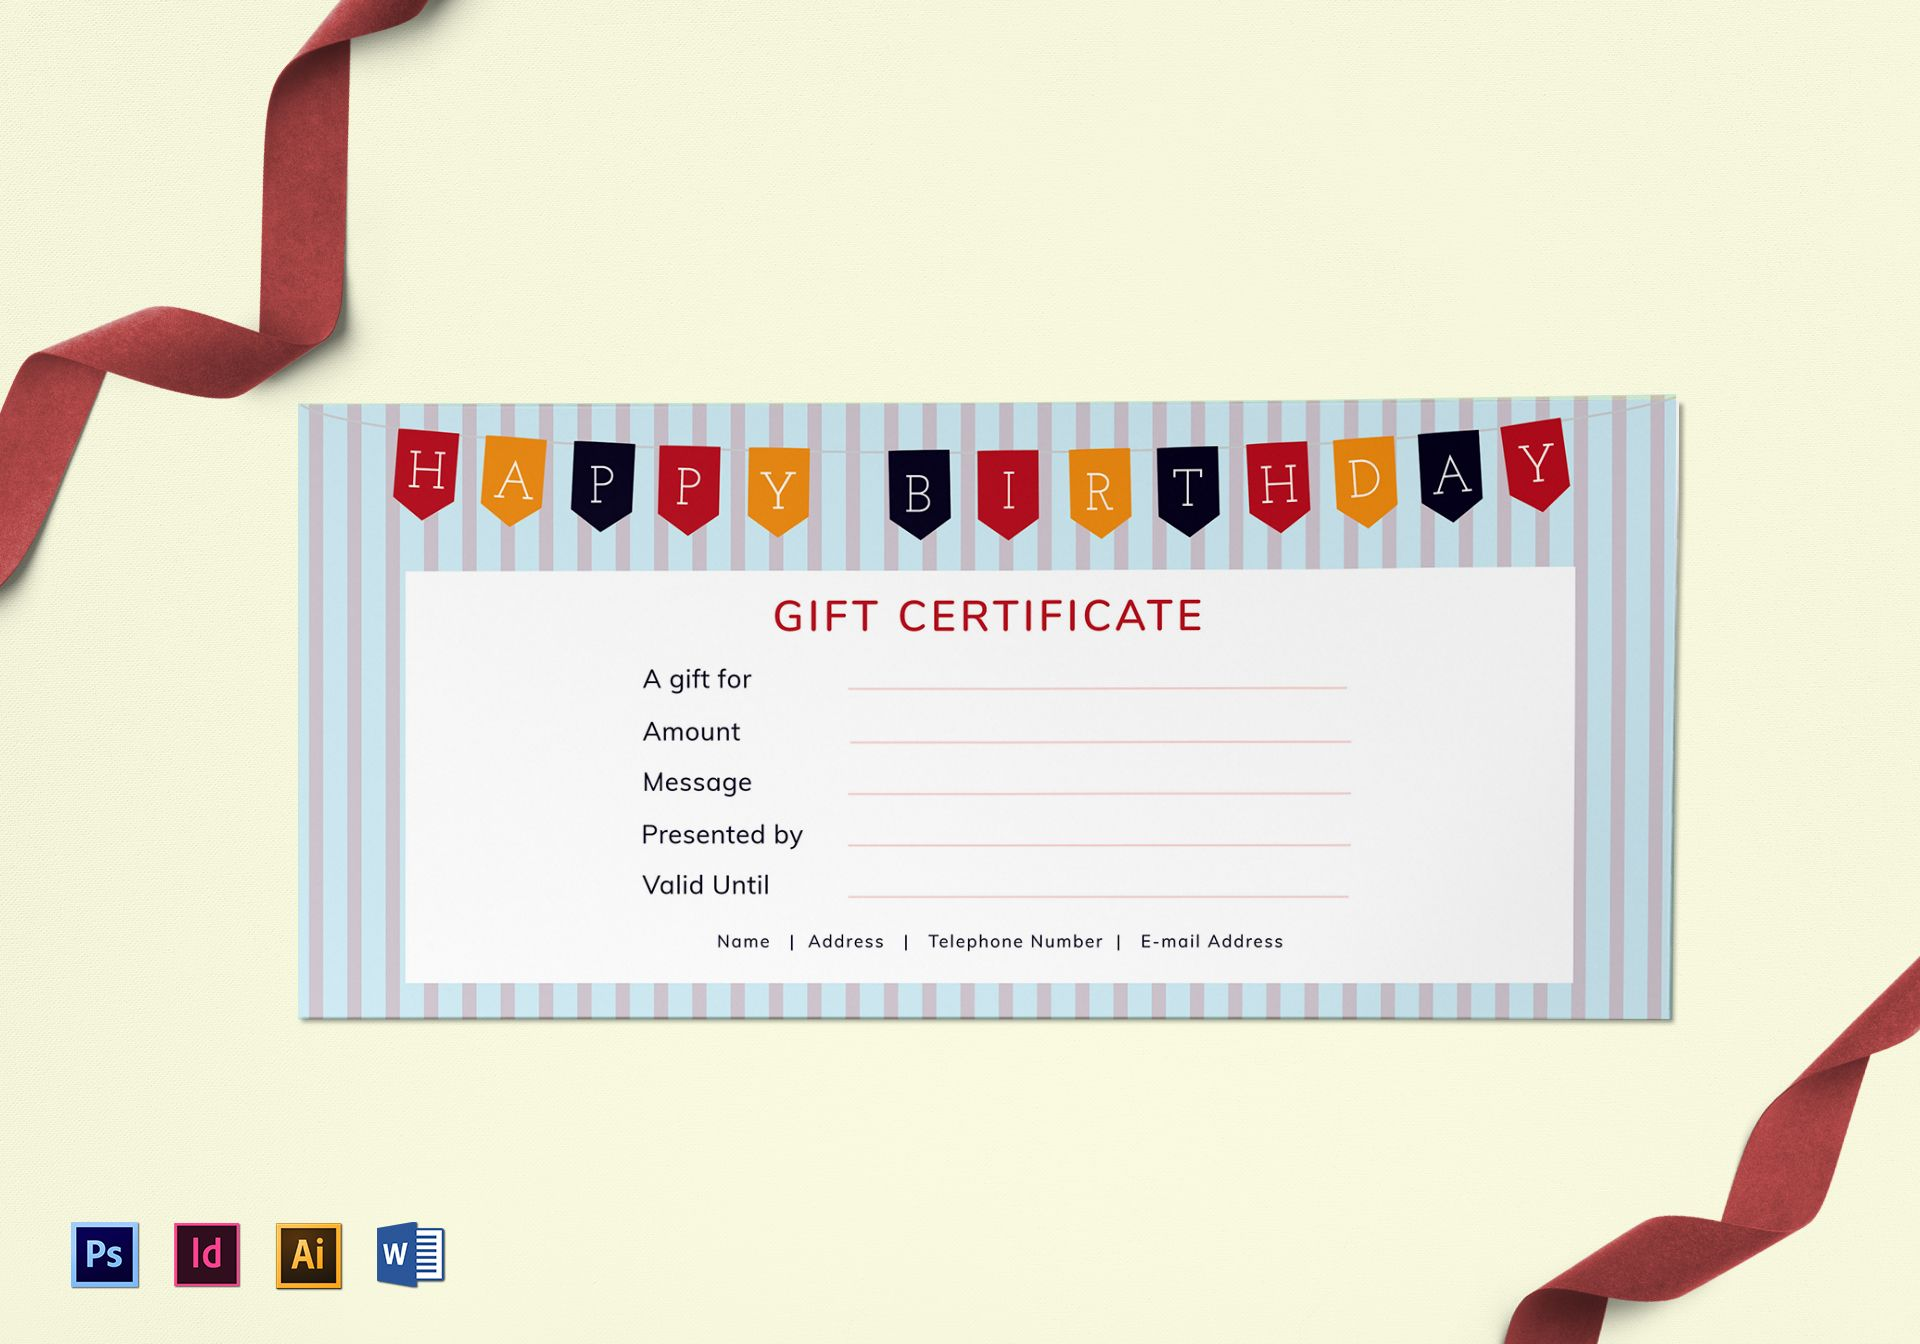 birthday cheque template - happy birthday gift certificate design template in psd